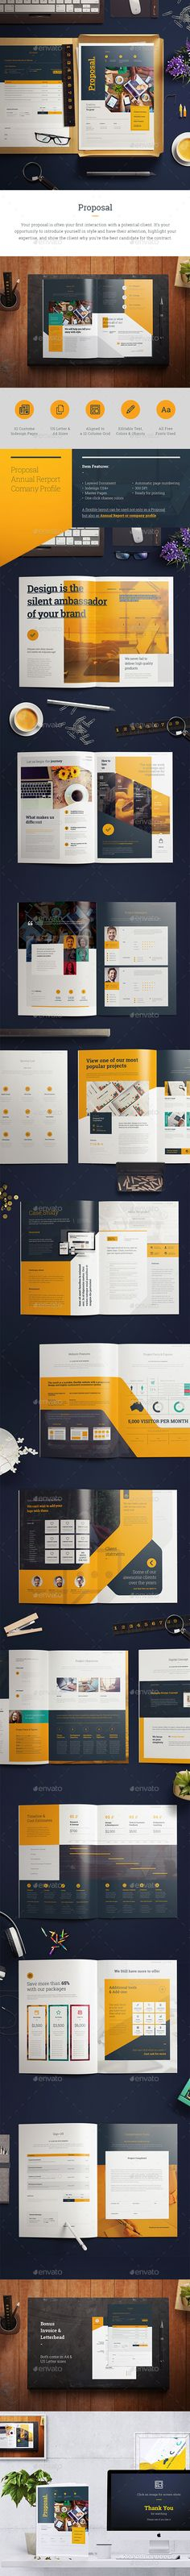 Proposal u2014 InDesign INDD brand informational u2022